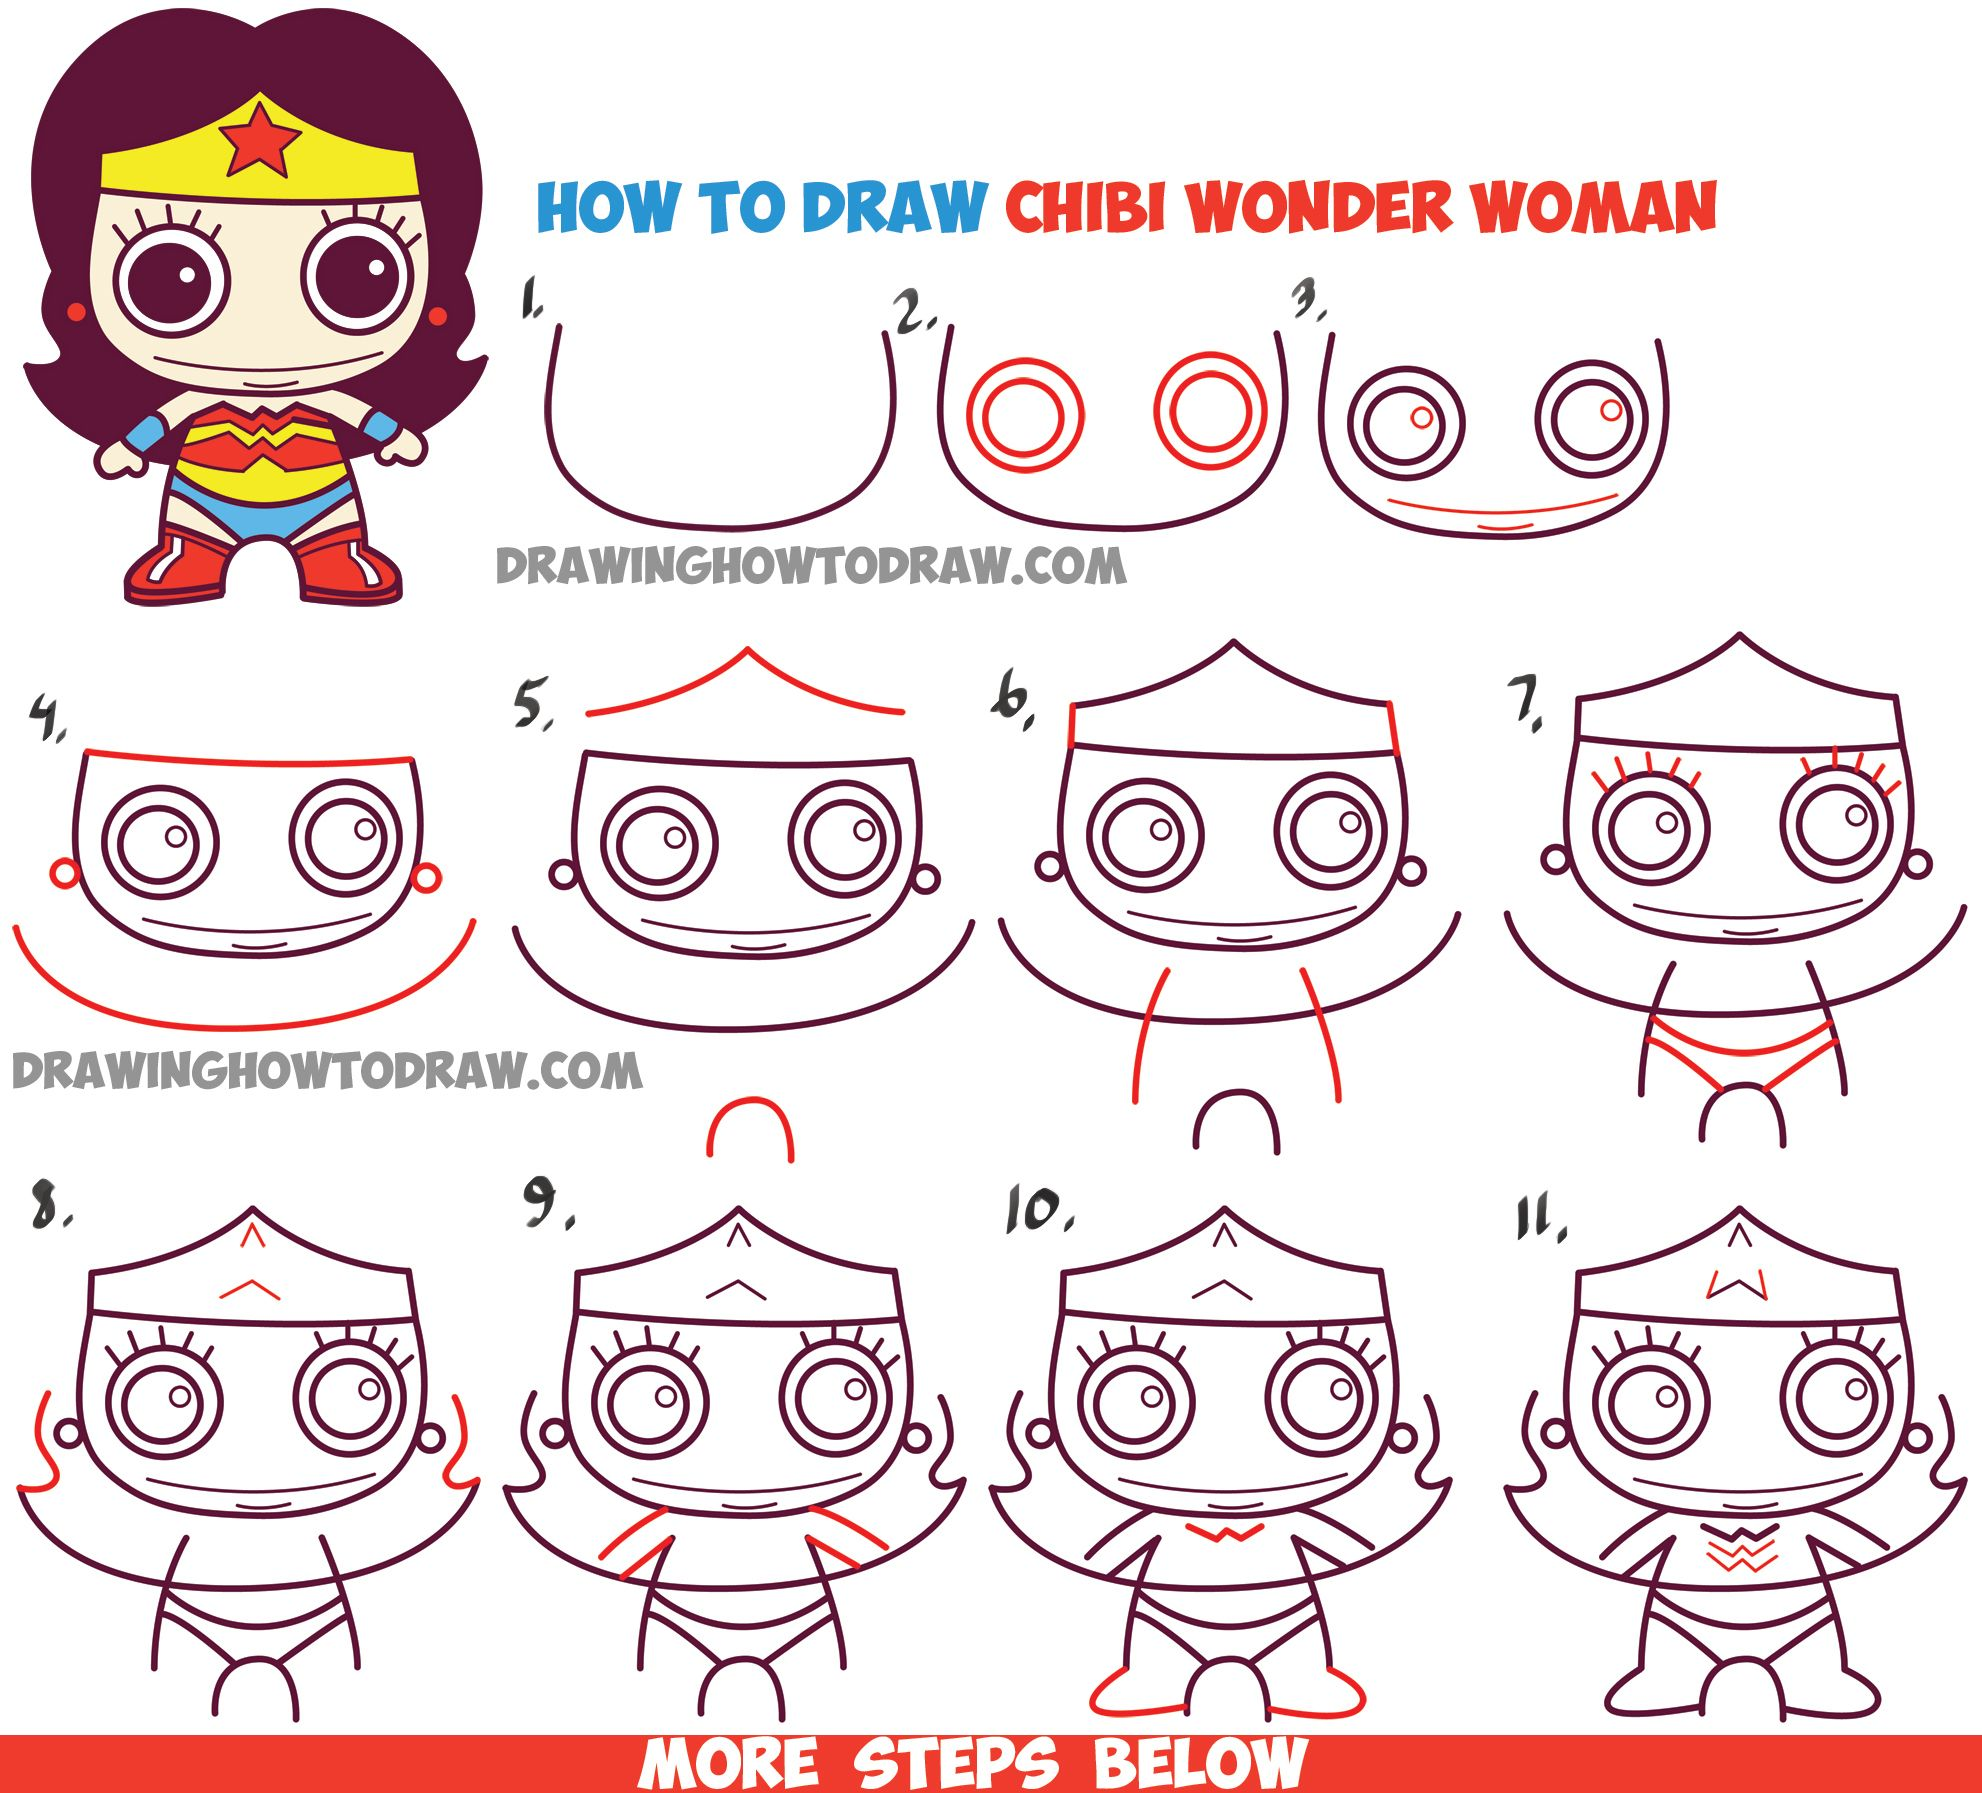 How To Draw Cute Chibi Wonder Woman From Dc Comics In Easy -7182